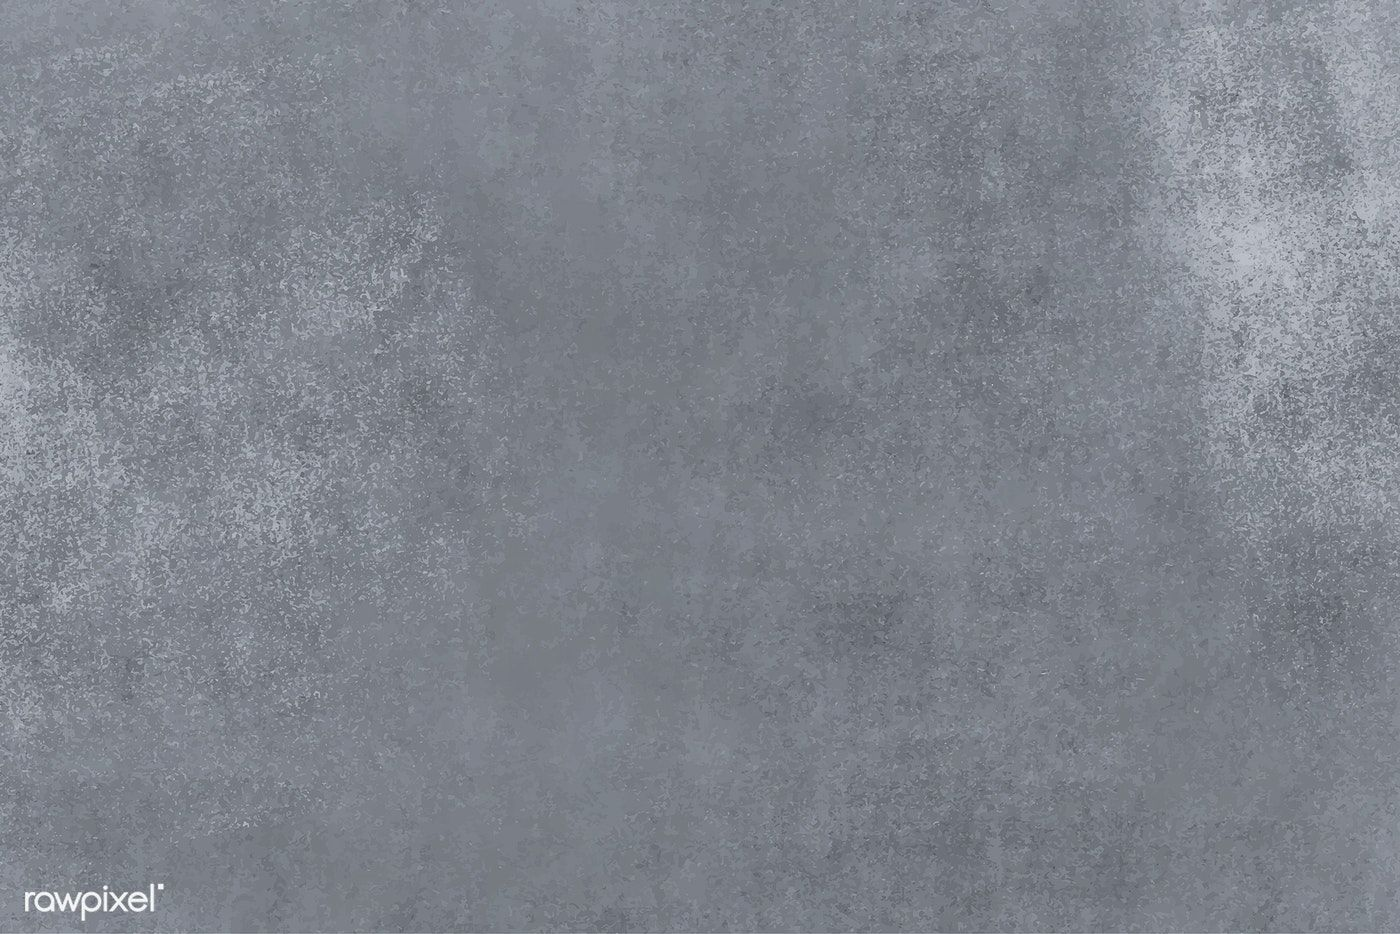 Grunge Gray Concrete Textured Background Vector Free Image By Rawpixel Com Aom Woraluck Hwangmangjoo Concrete Texture Textured Background Concrete Wall